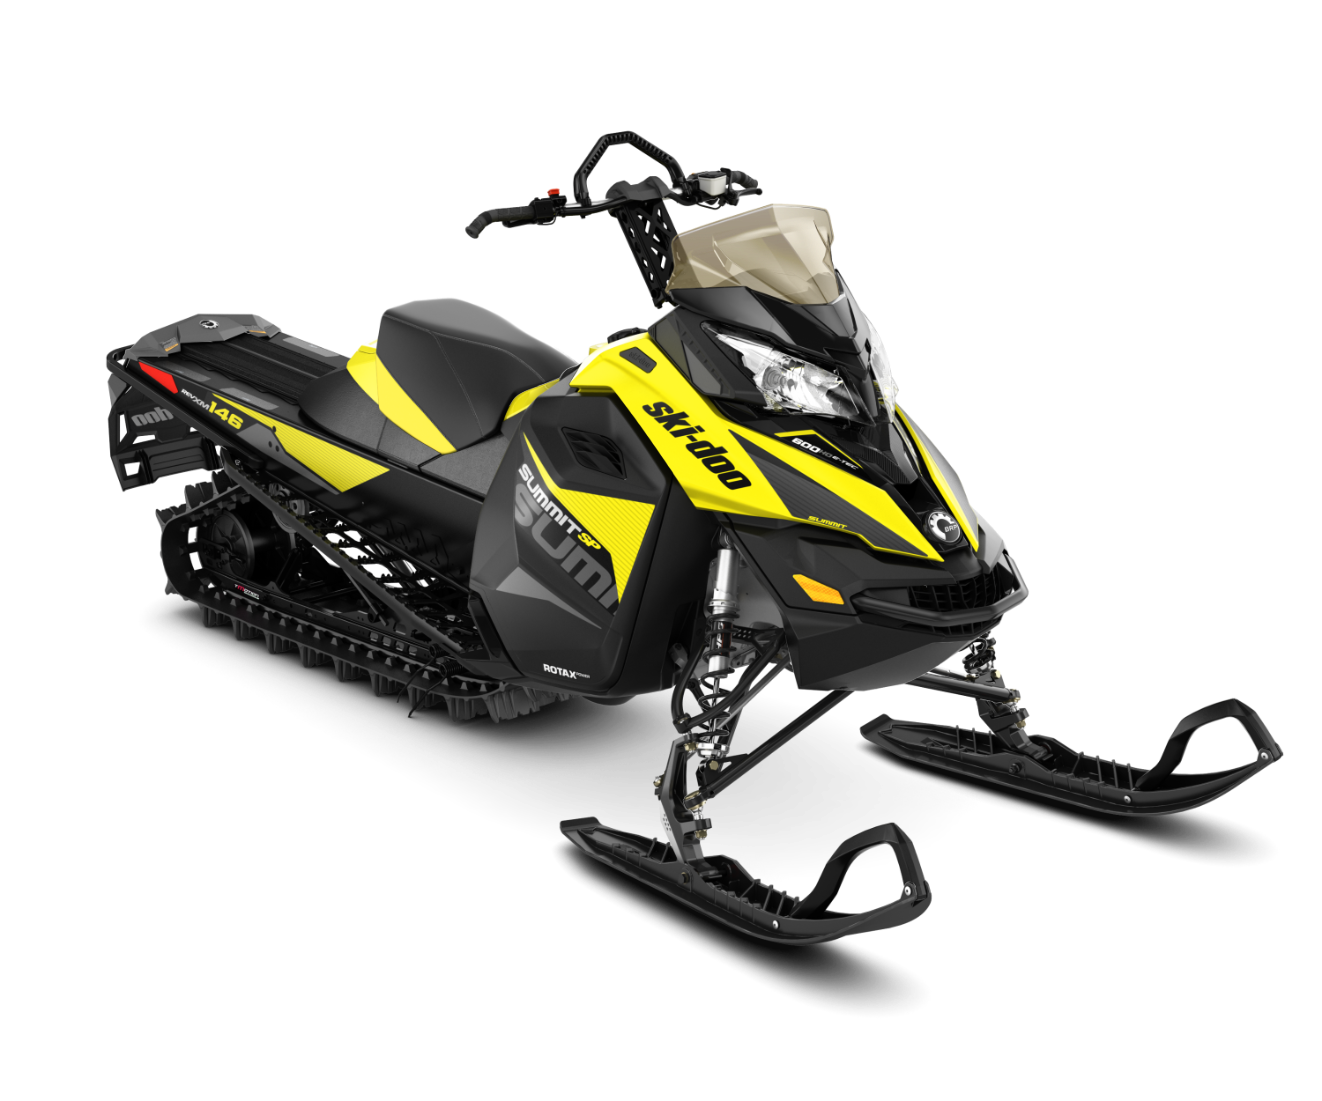 2018 Ski-Doo Summit SP 146 600 H.O. E-TEC in Omaha, Nebraska